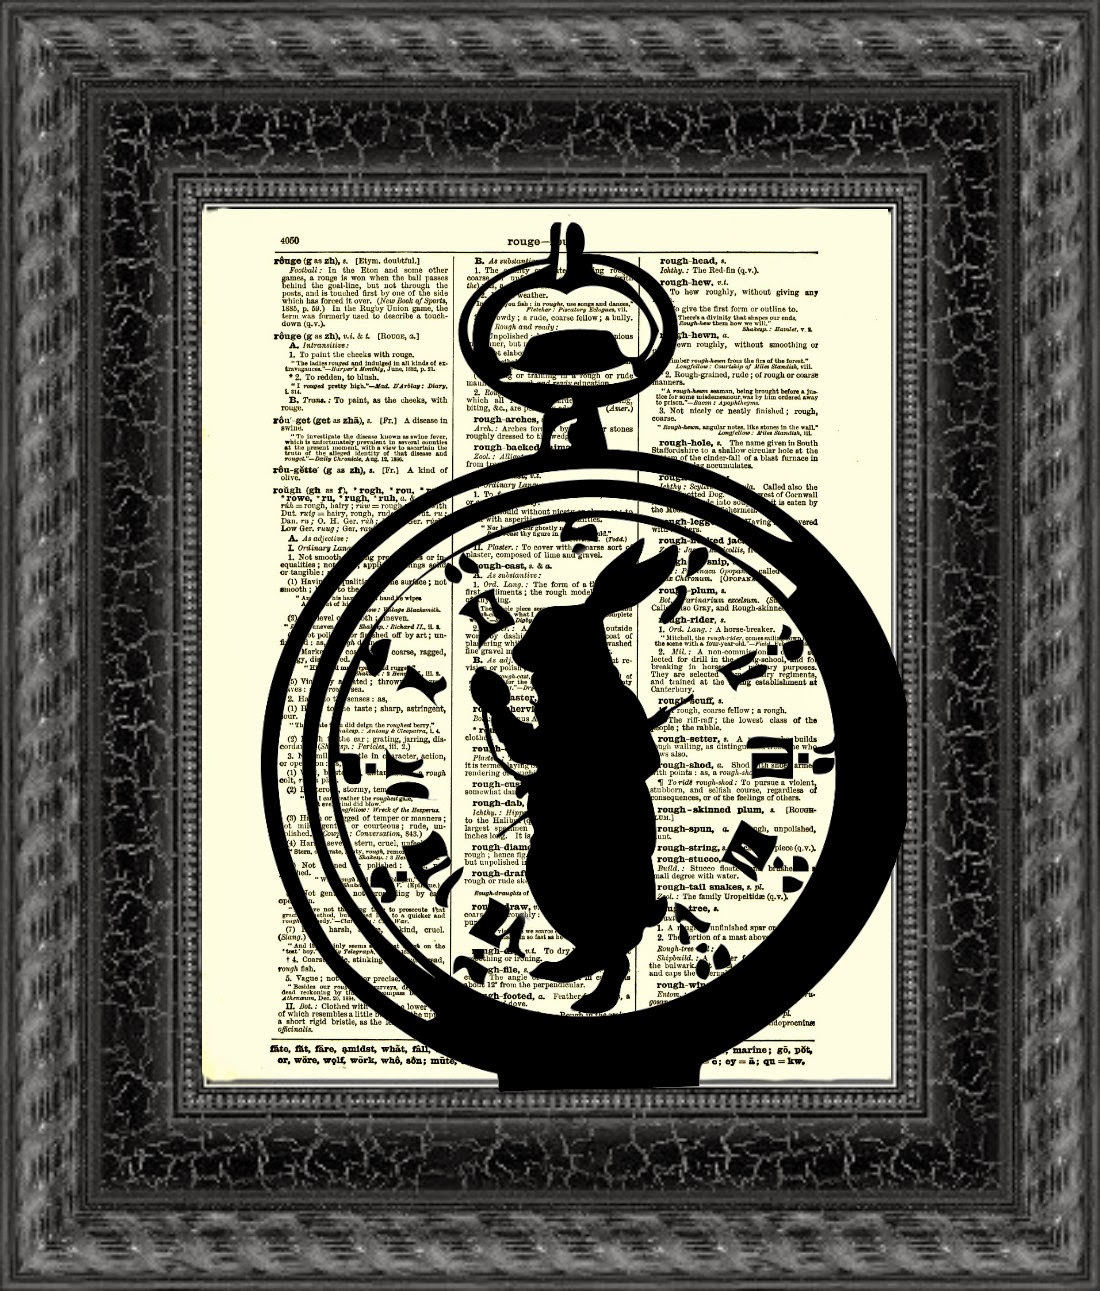 02-White-Rabbit-Belle-Old-Books-and-Dictionaries-in-Re-Imagination-Prints-www-designstack-co